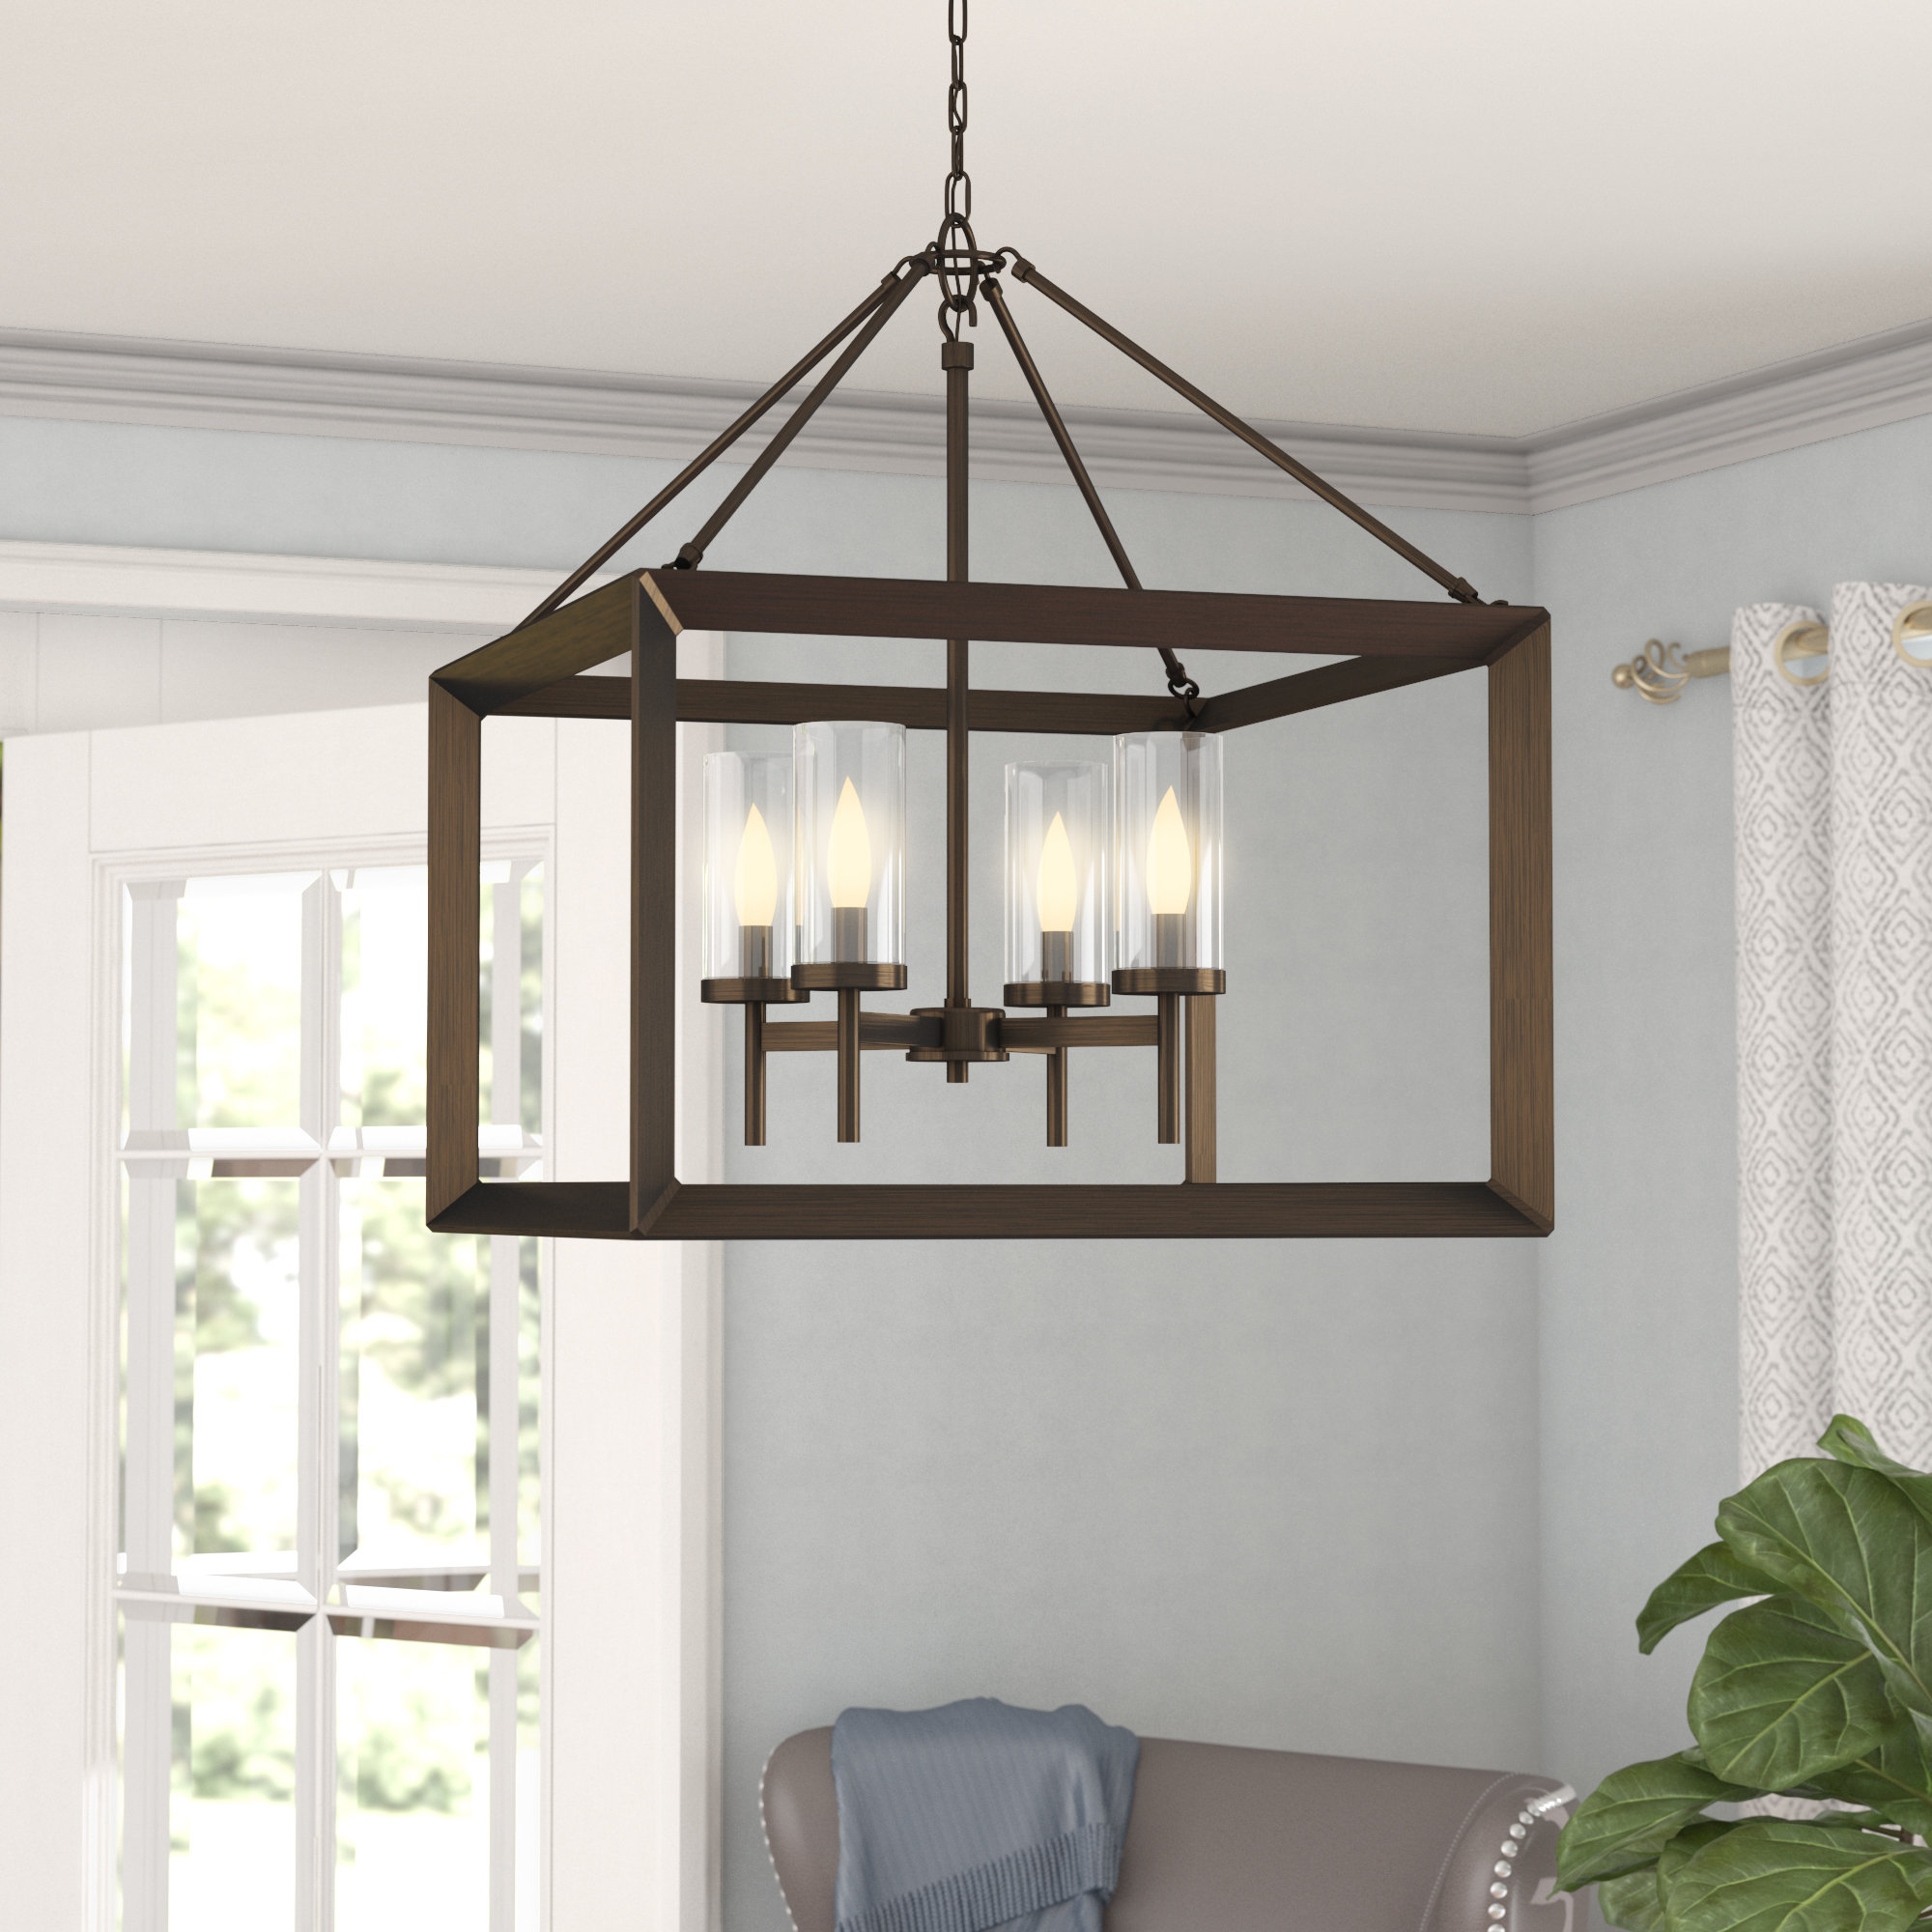 Thorne 4-Light Lantern Rectangle Pendant in Sherri-Ann 3-Light Lantern Square / Rectangle Pendants (Image 26 of 30)